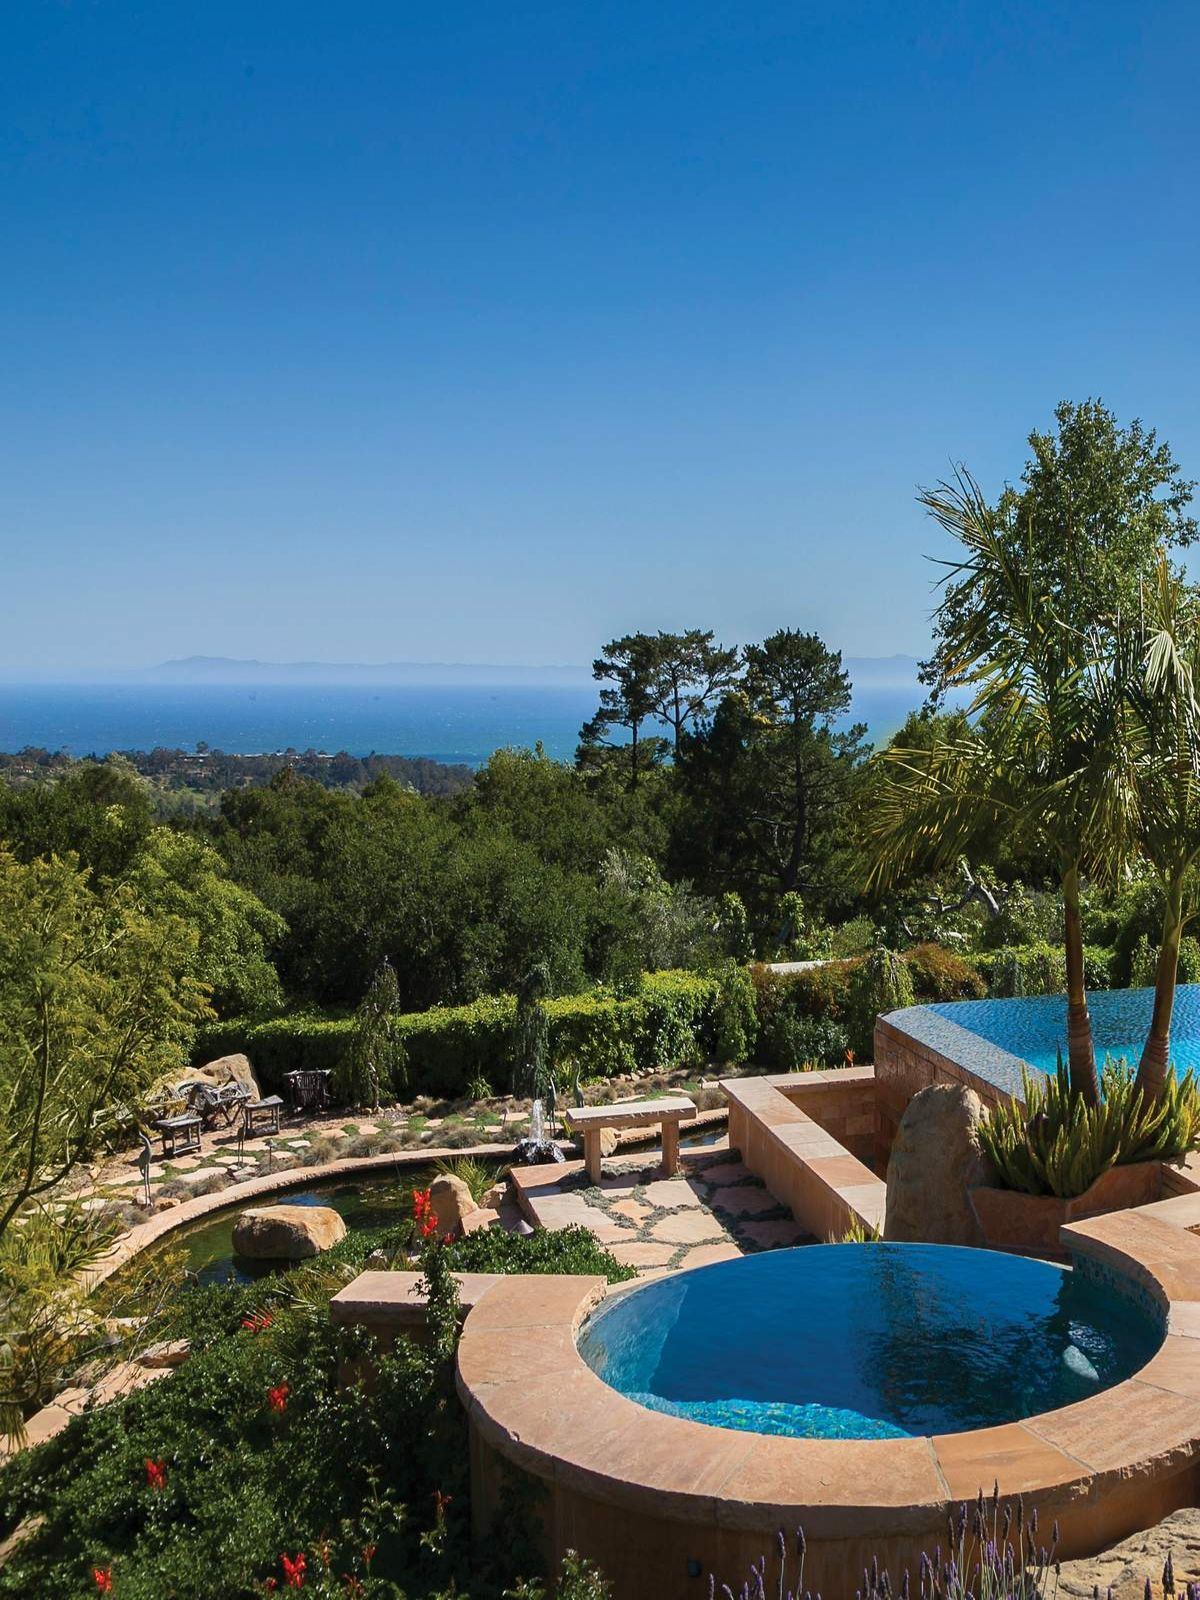 910 Buena Vista Drive, Montecito CA Single Family Home - Santa Barbara Real Estate